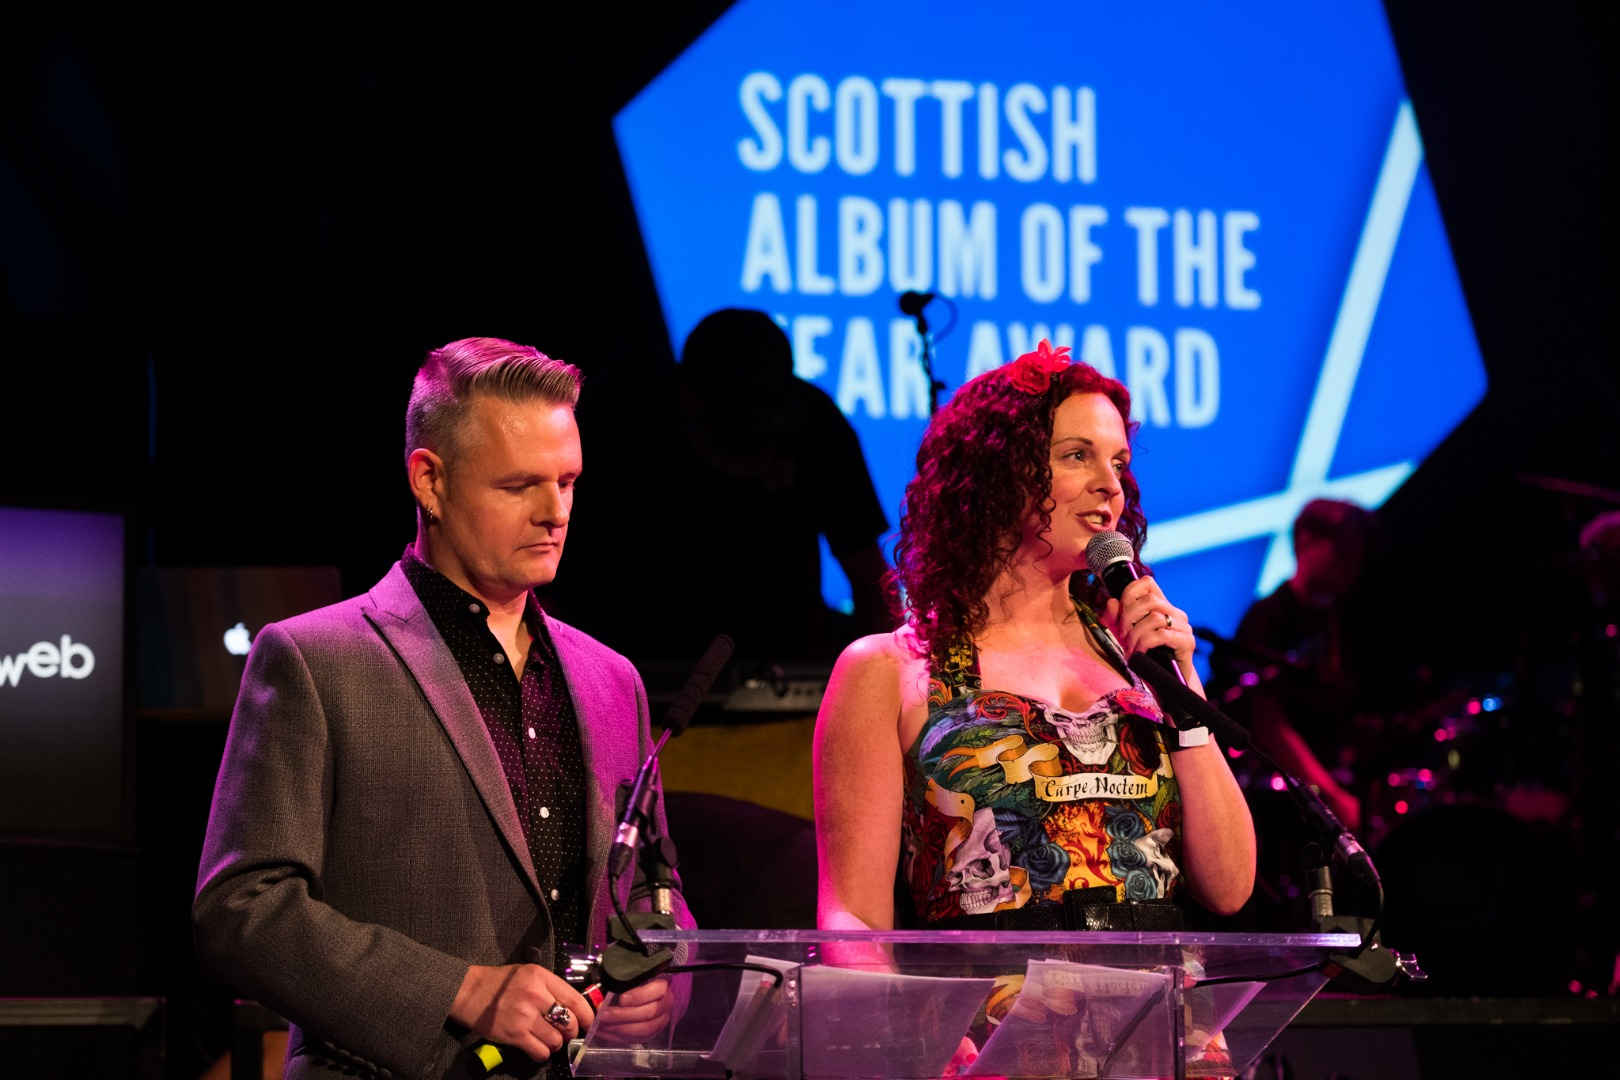 Paisley to welcome Scottish Album of the Year Award back in 2018